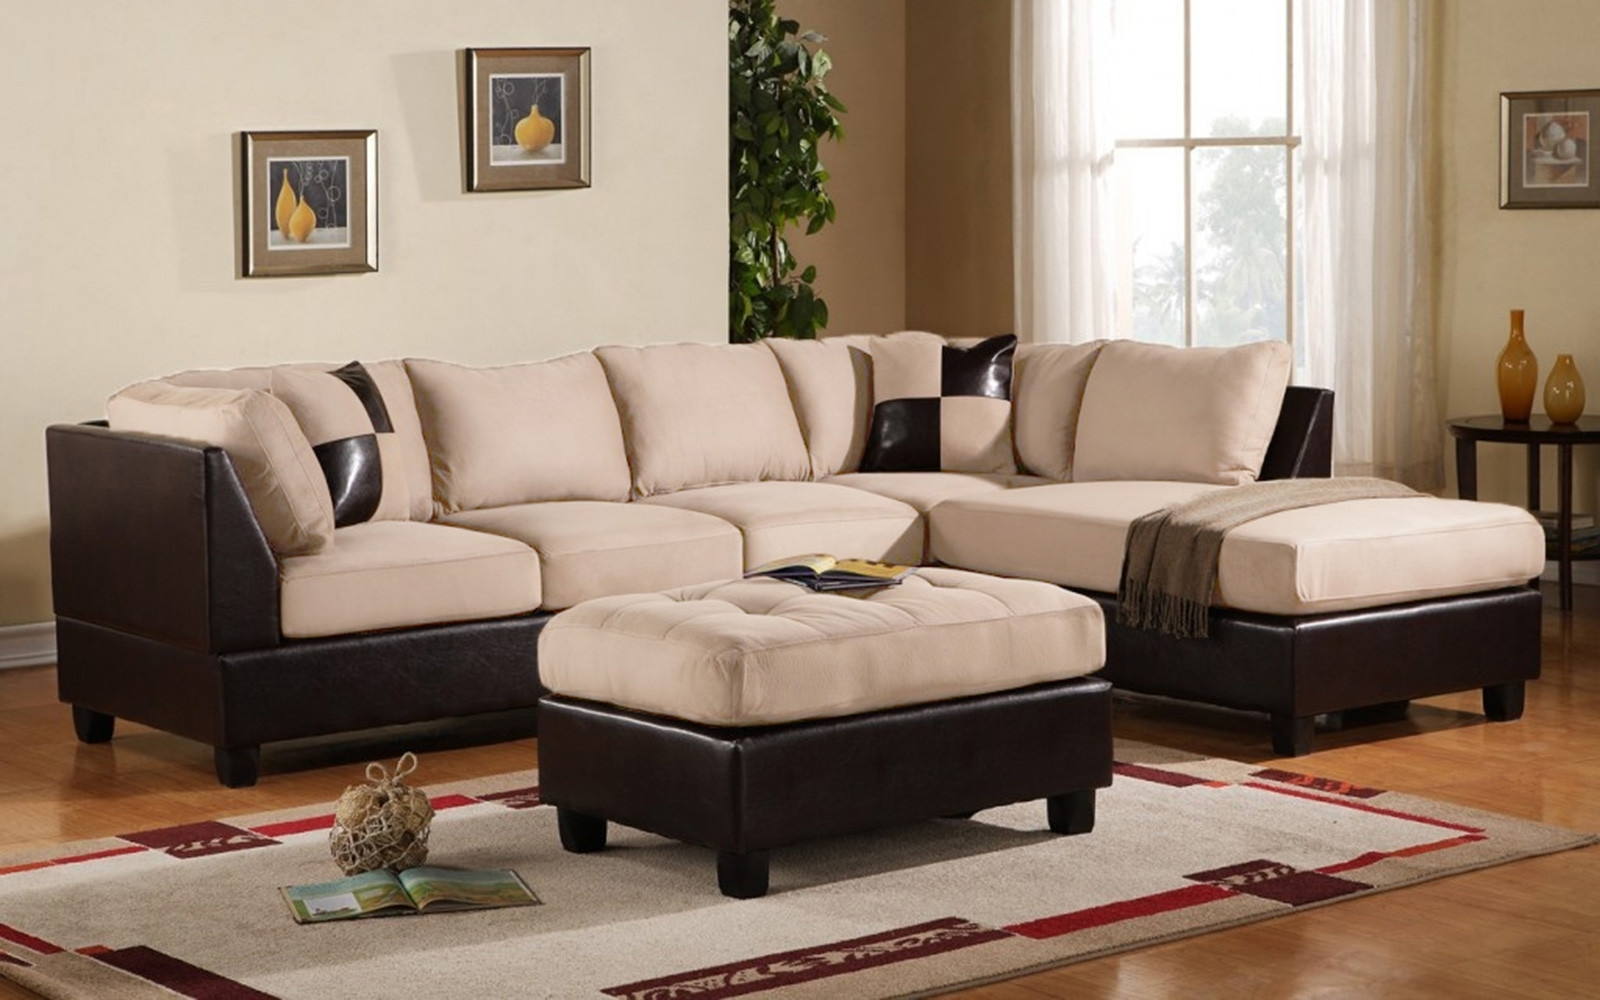 Faux Suede Sectional Sofa – Home And Textiles Pertaining To Famous Queens Ny Sectional Sofas (View 5 of 15)